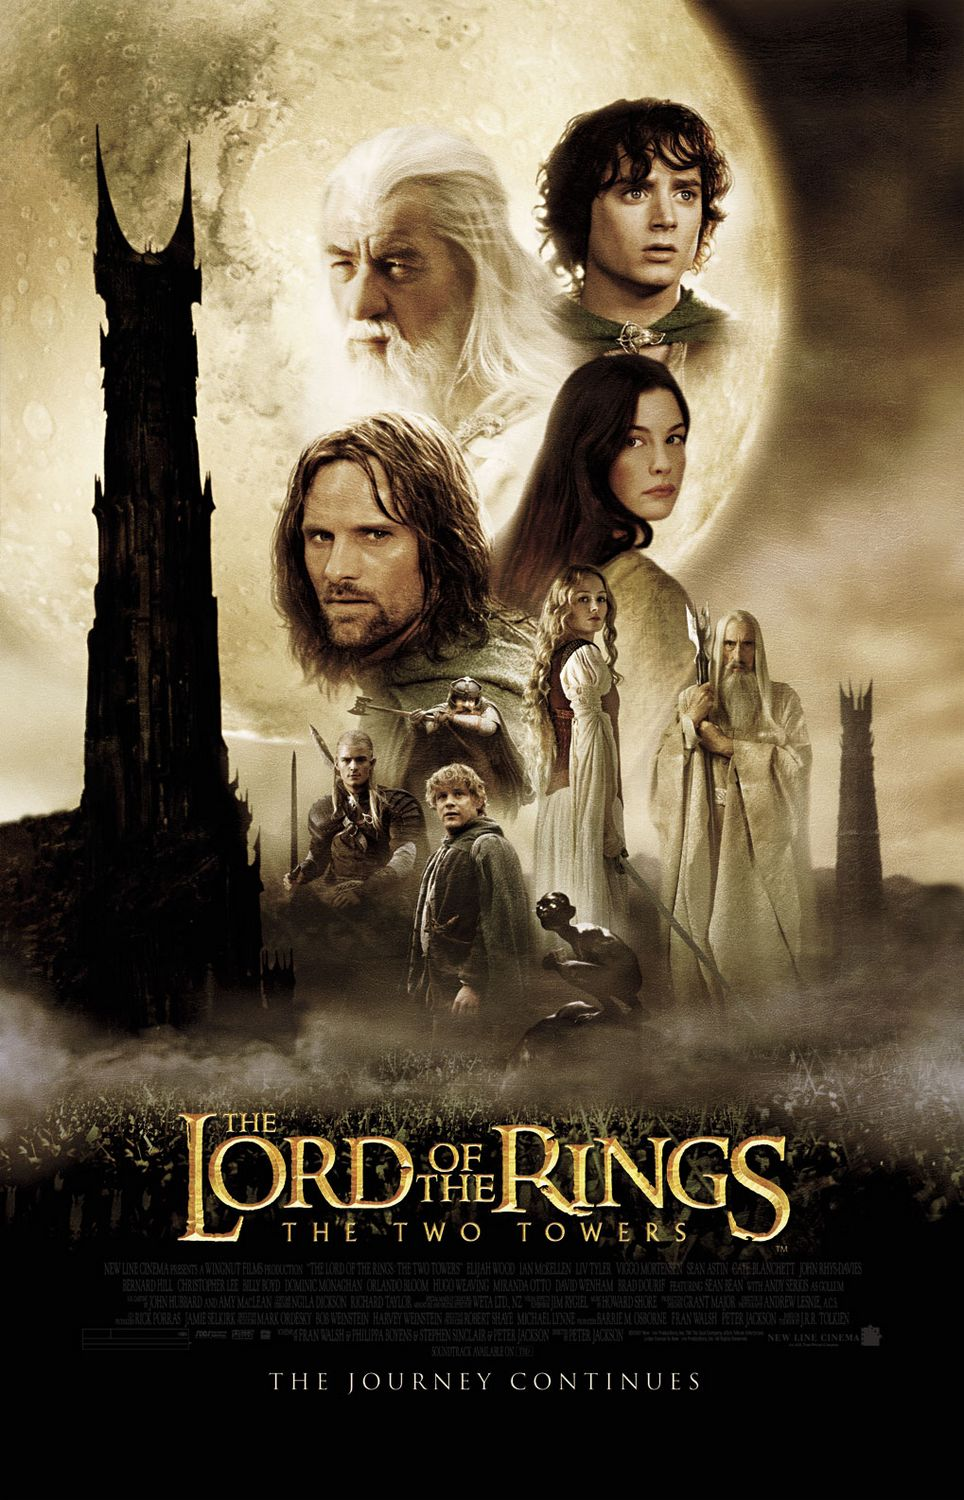 lord_of_the_rings_the_two_towers_ver3_xlg.jpg